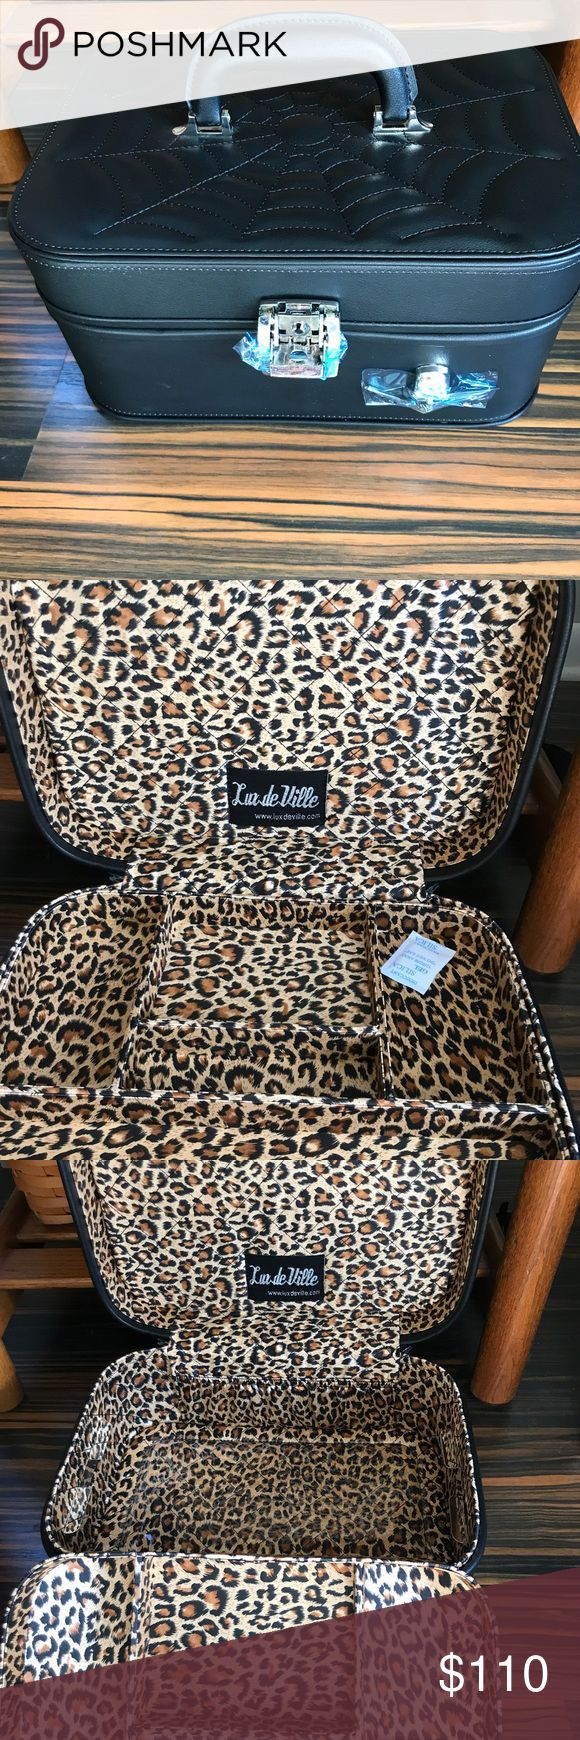 Lux de ville vanity case Brand new Elvira vanity case it is black matte has the spider web stitching on top with skull hardware inside lined with leopard and plastic coded bottom great for the makeup artist or can be used as a jewelry box size is 13 x 9x6 make offers no trades lux de ville Bags Cosmetic Bags & Cases